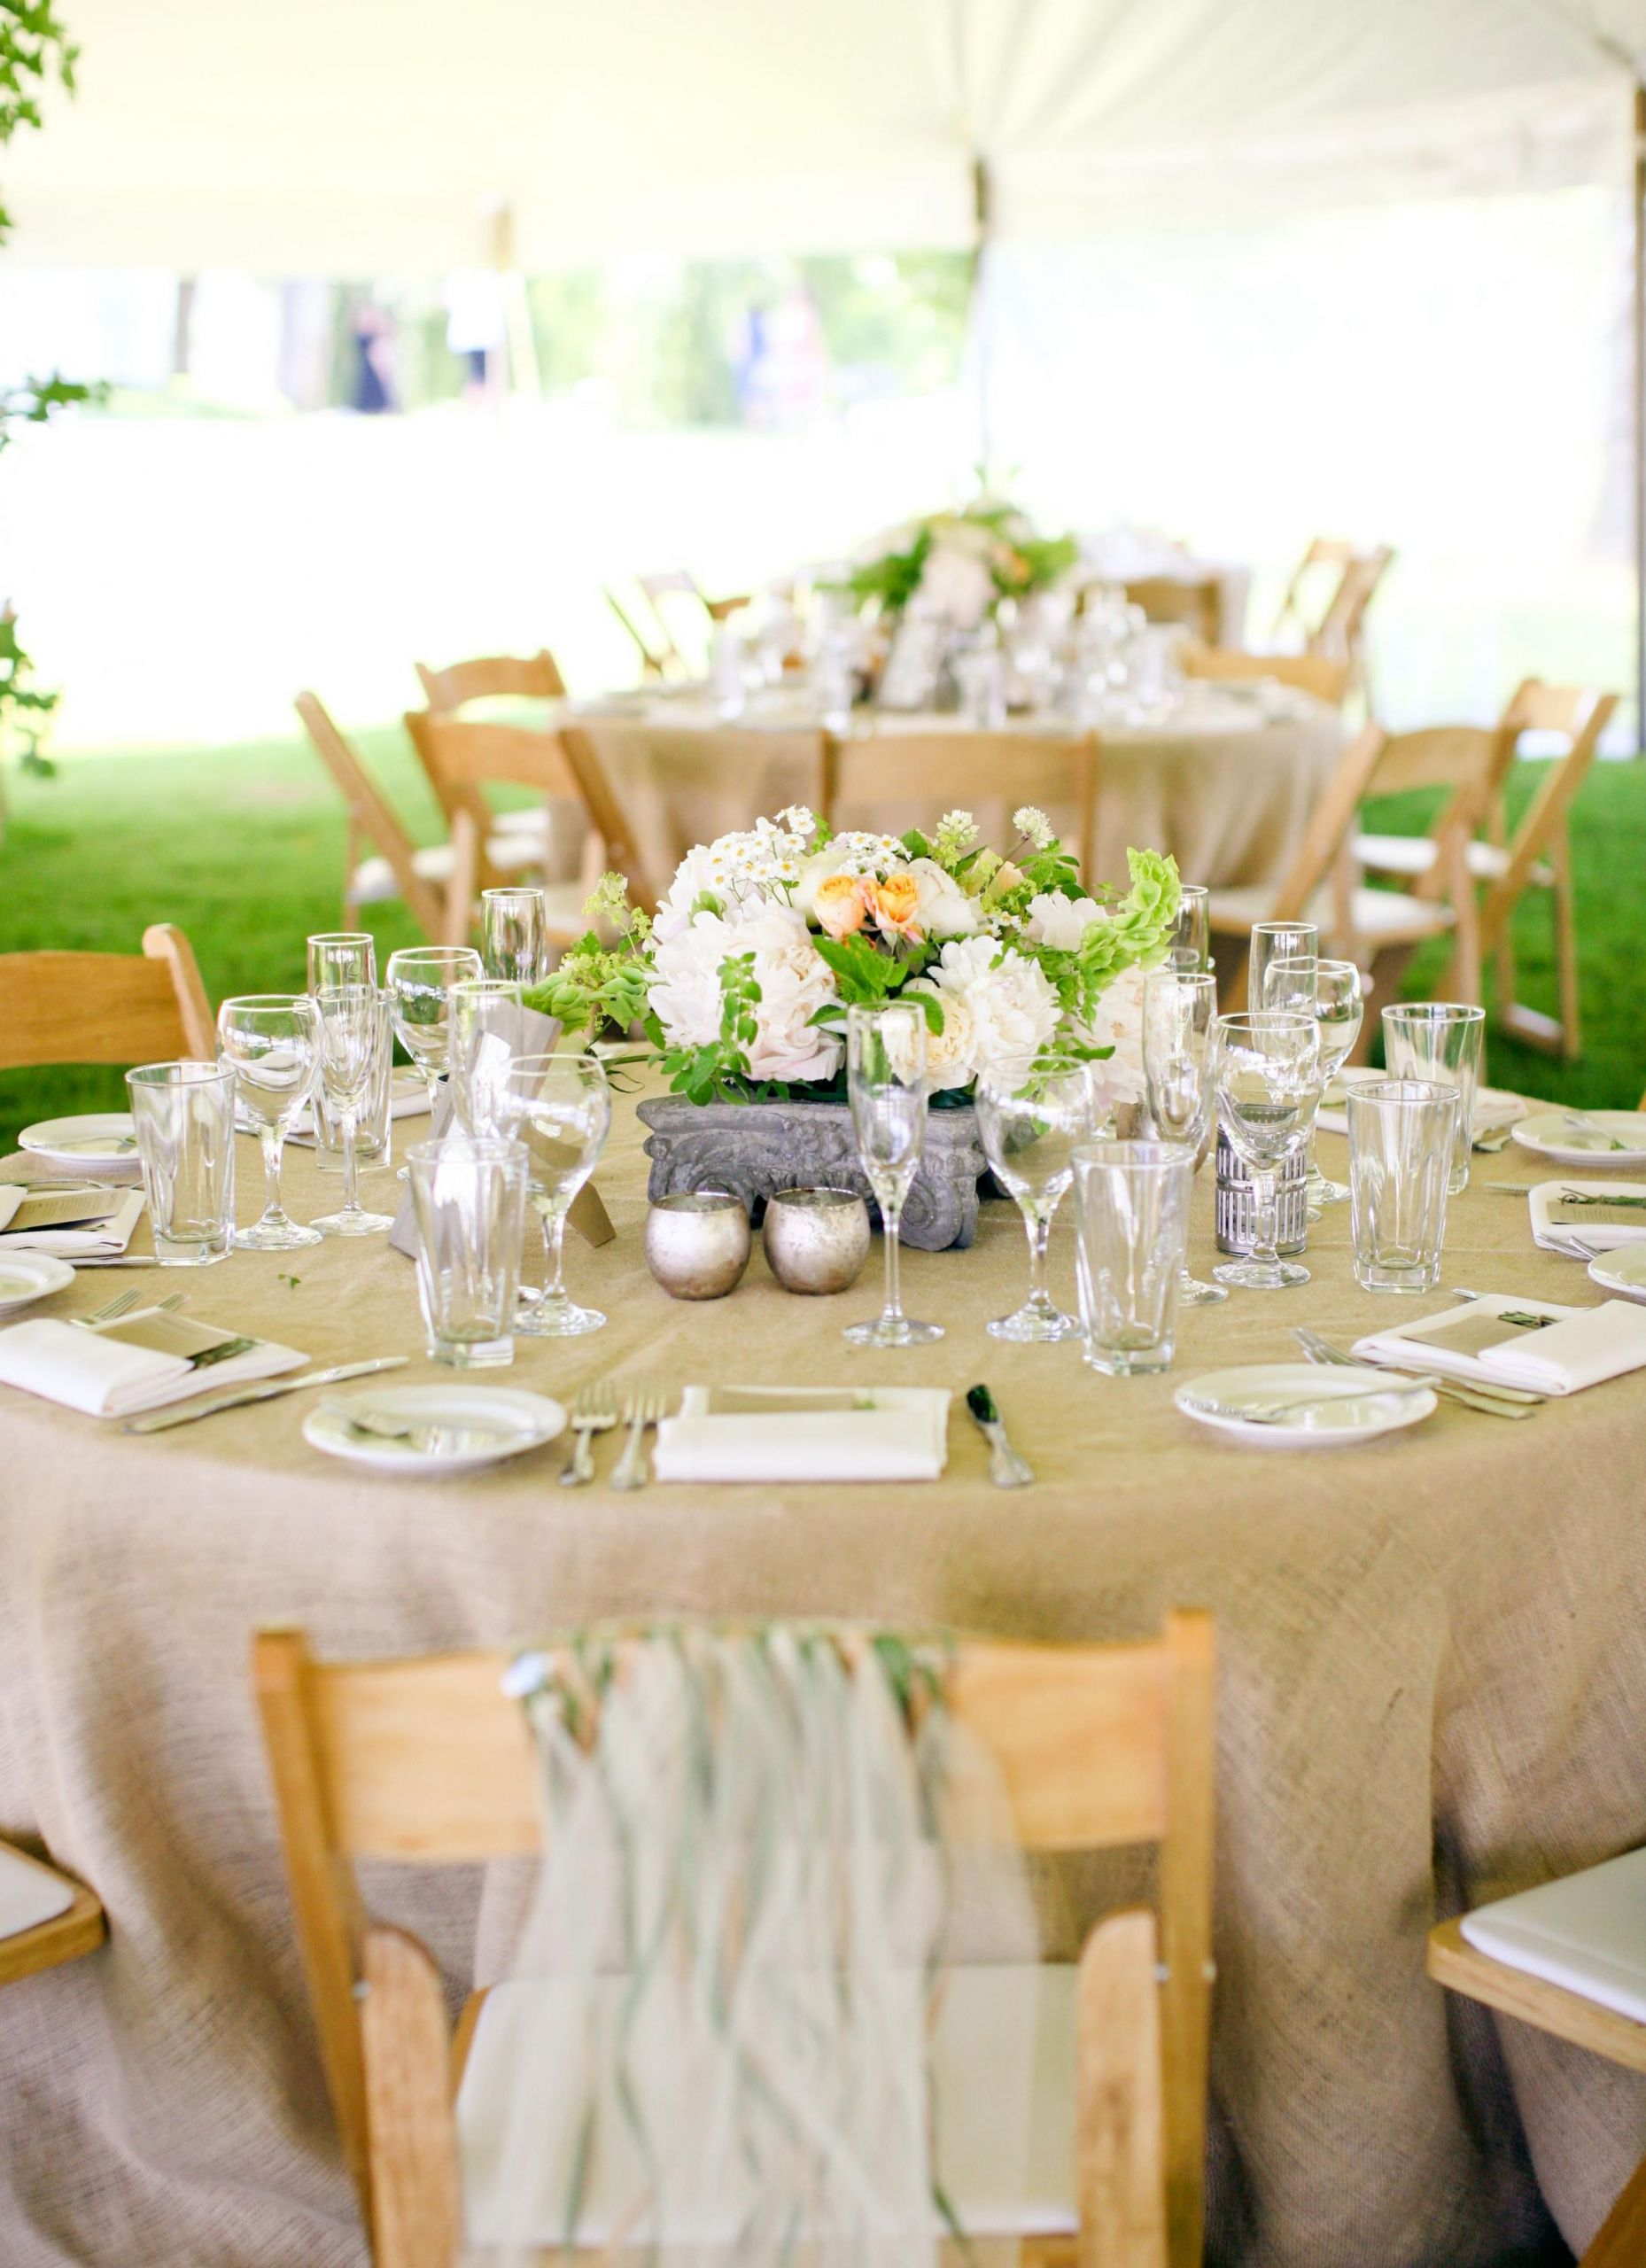 Wedding Table Decorations  Some Wedding Table Decoration Ideas And Tips Interior